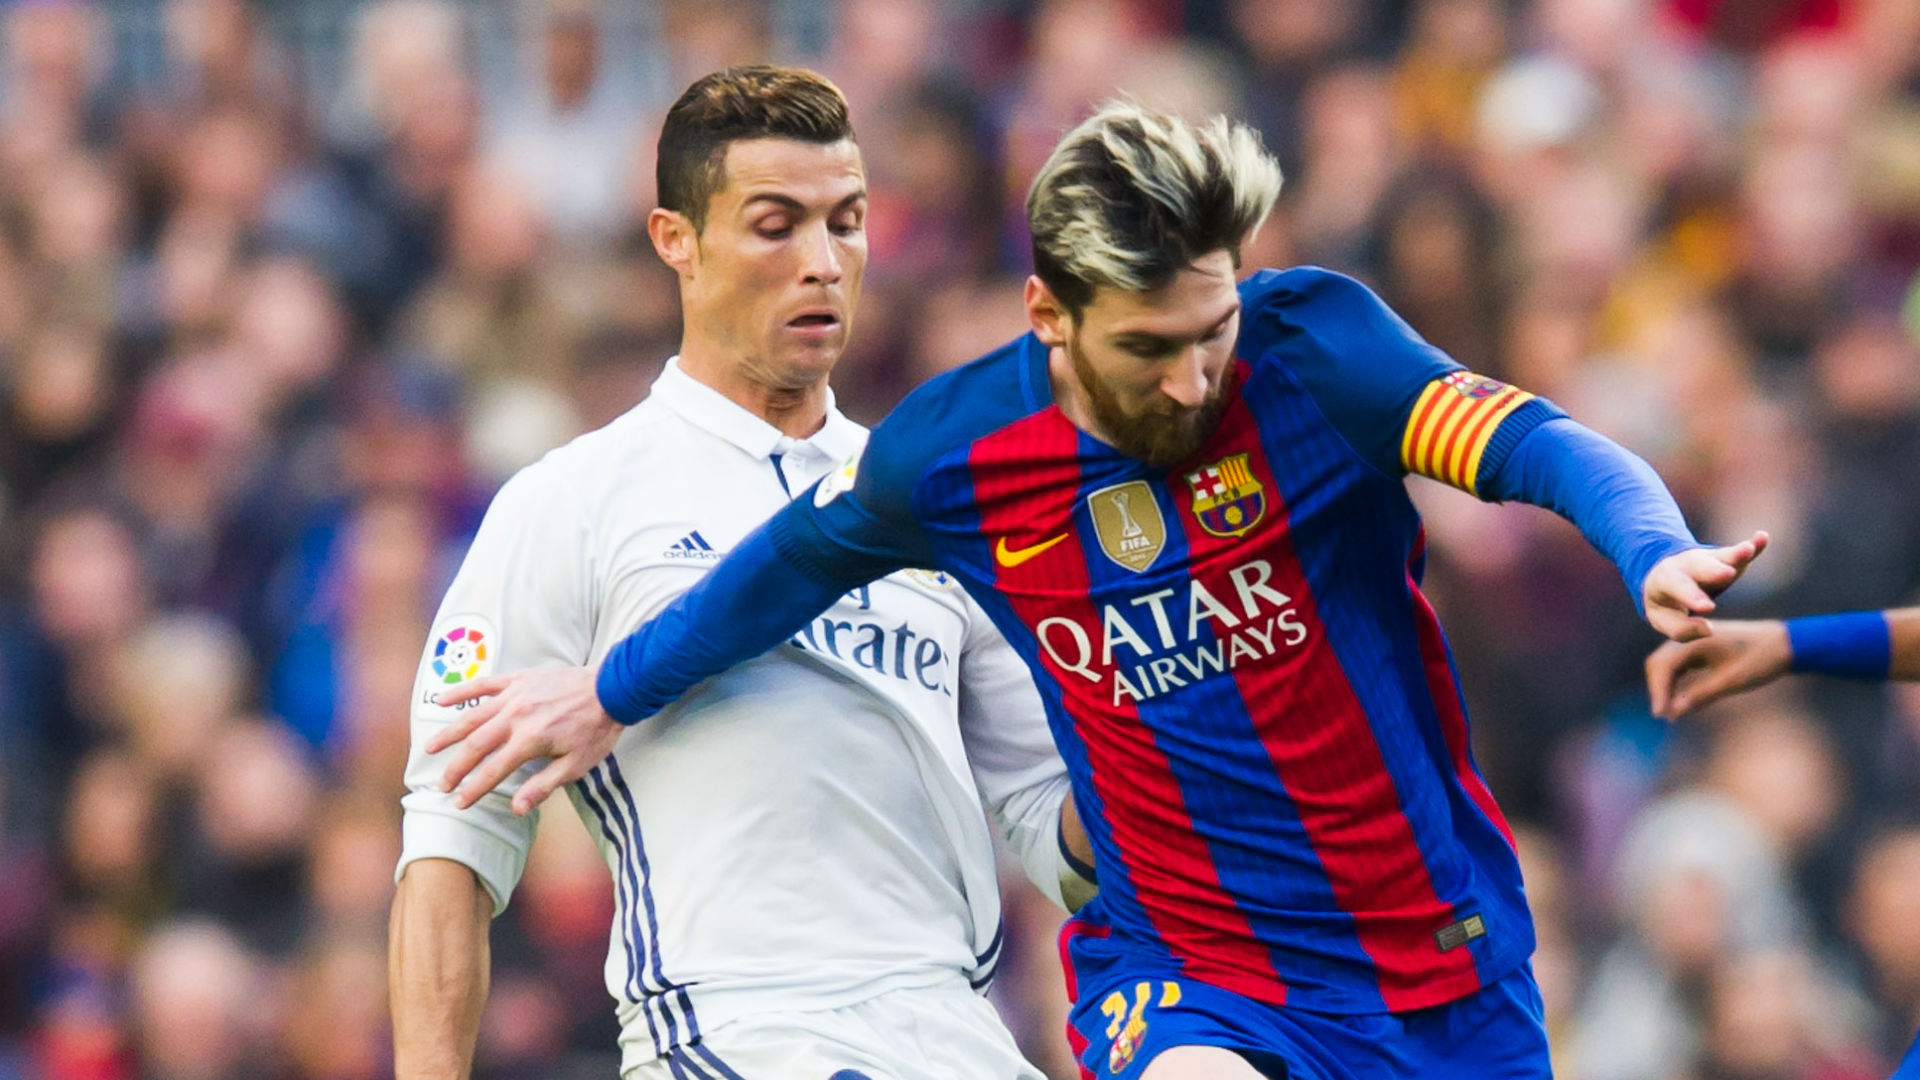 Messi versus Ronaldo Champions League final still possible - Mourinho